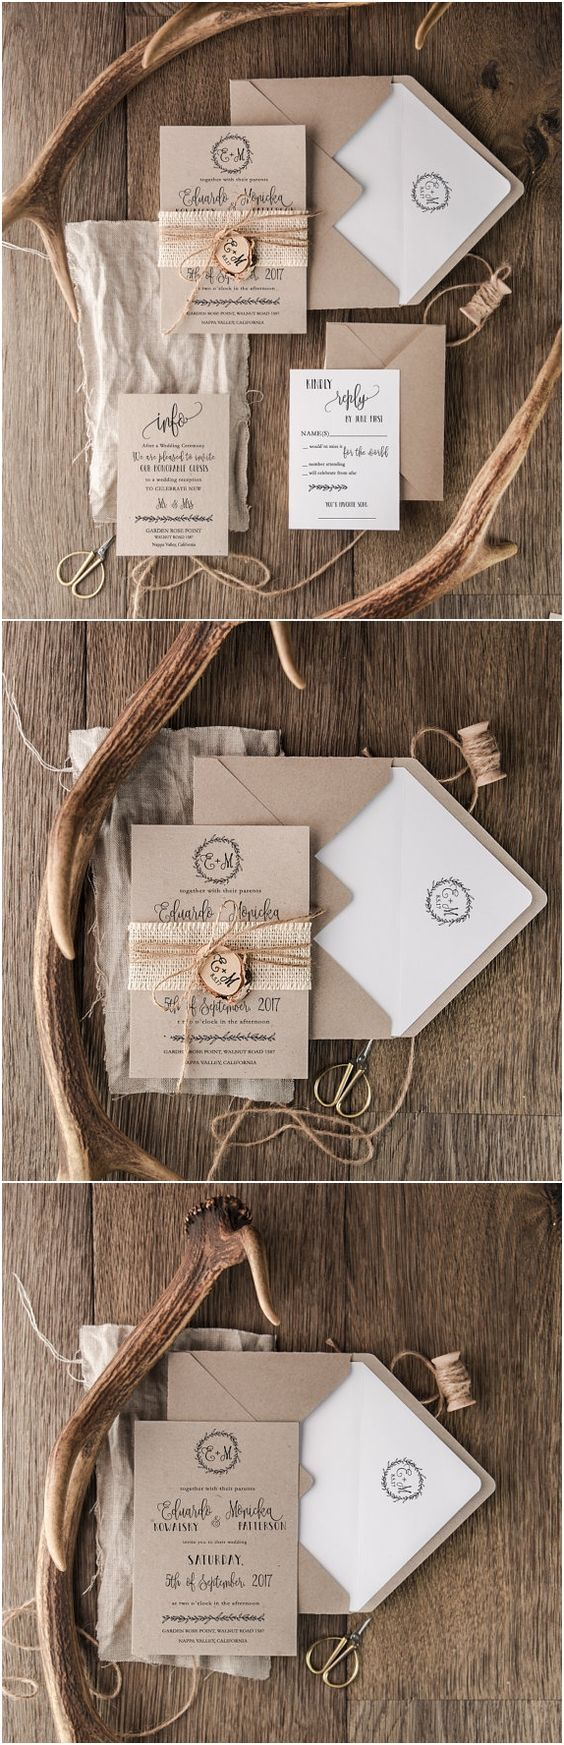 Burlap Wooden Rustic Wedding Invitation